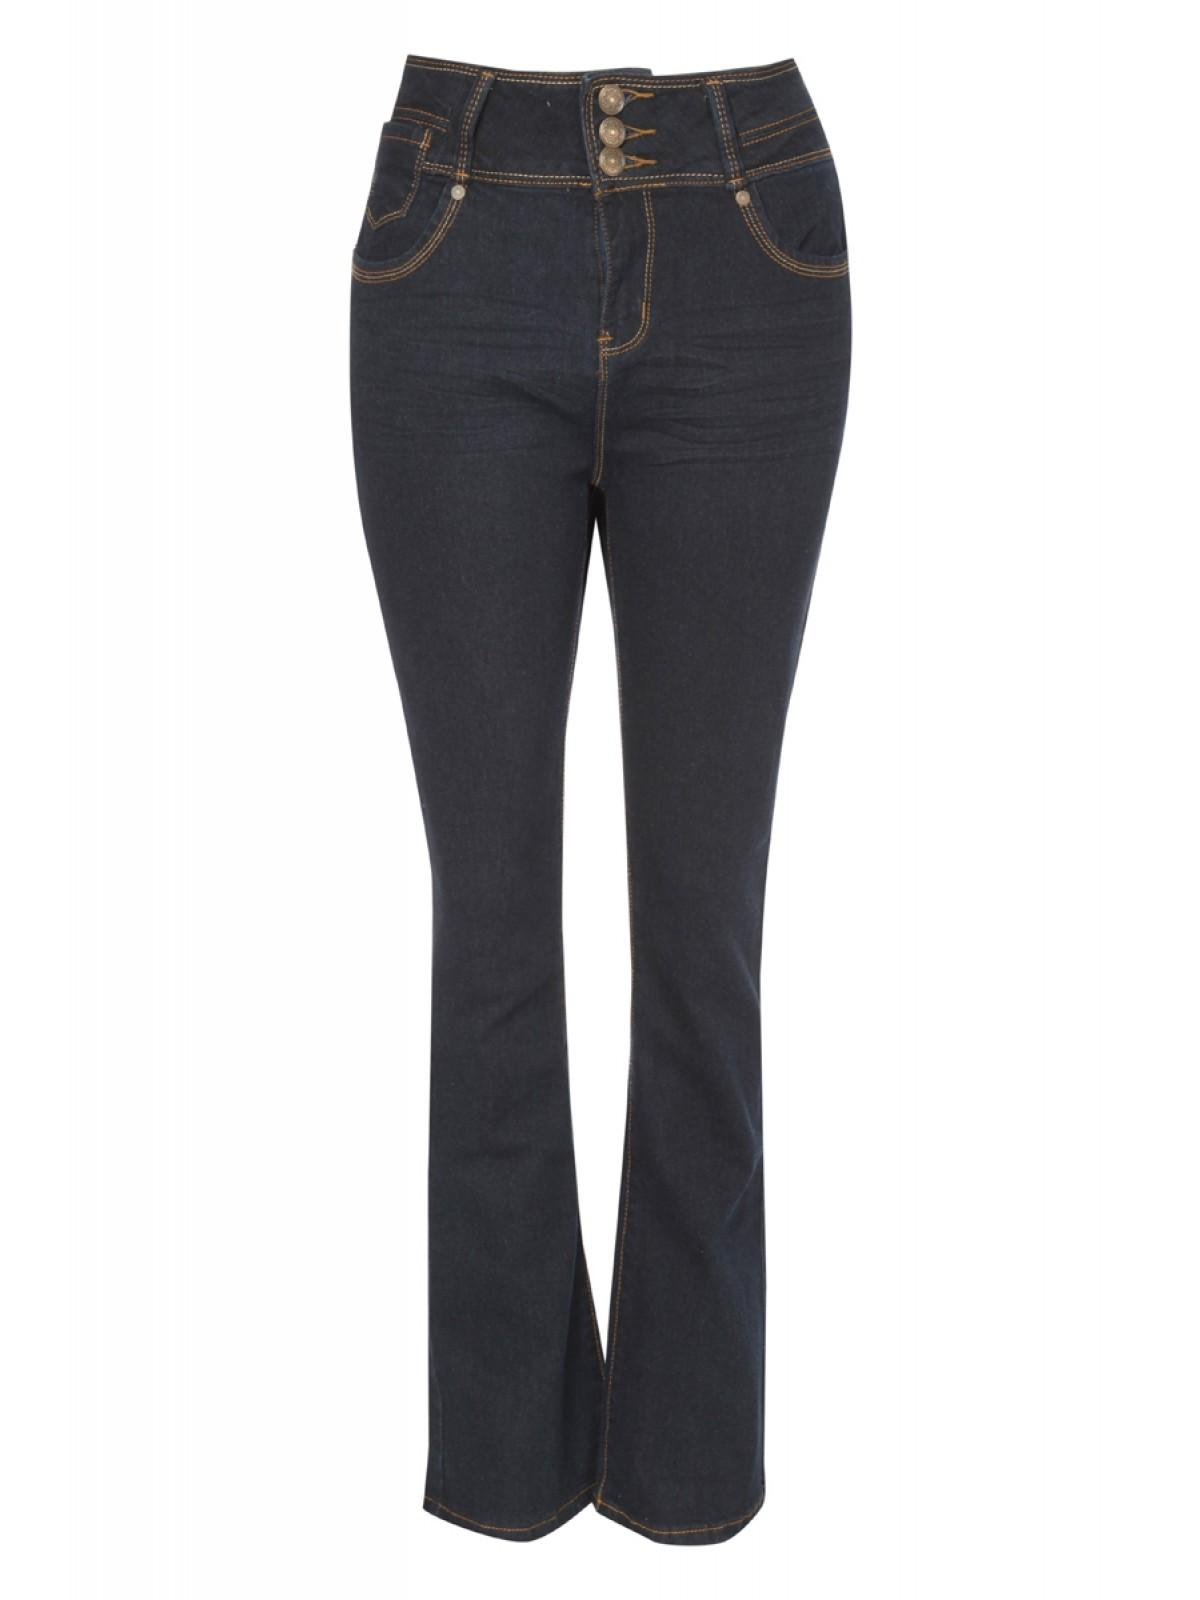 Womens High Waisted Bootcut Jeans | Peacocks